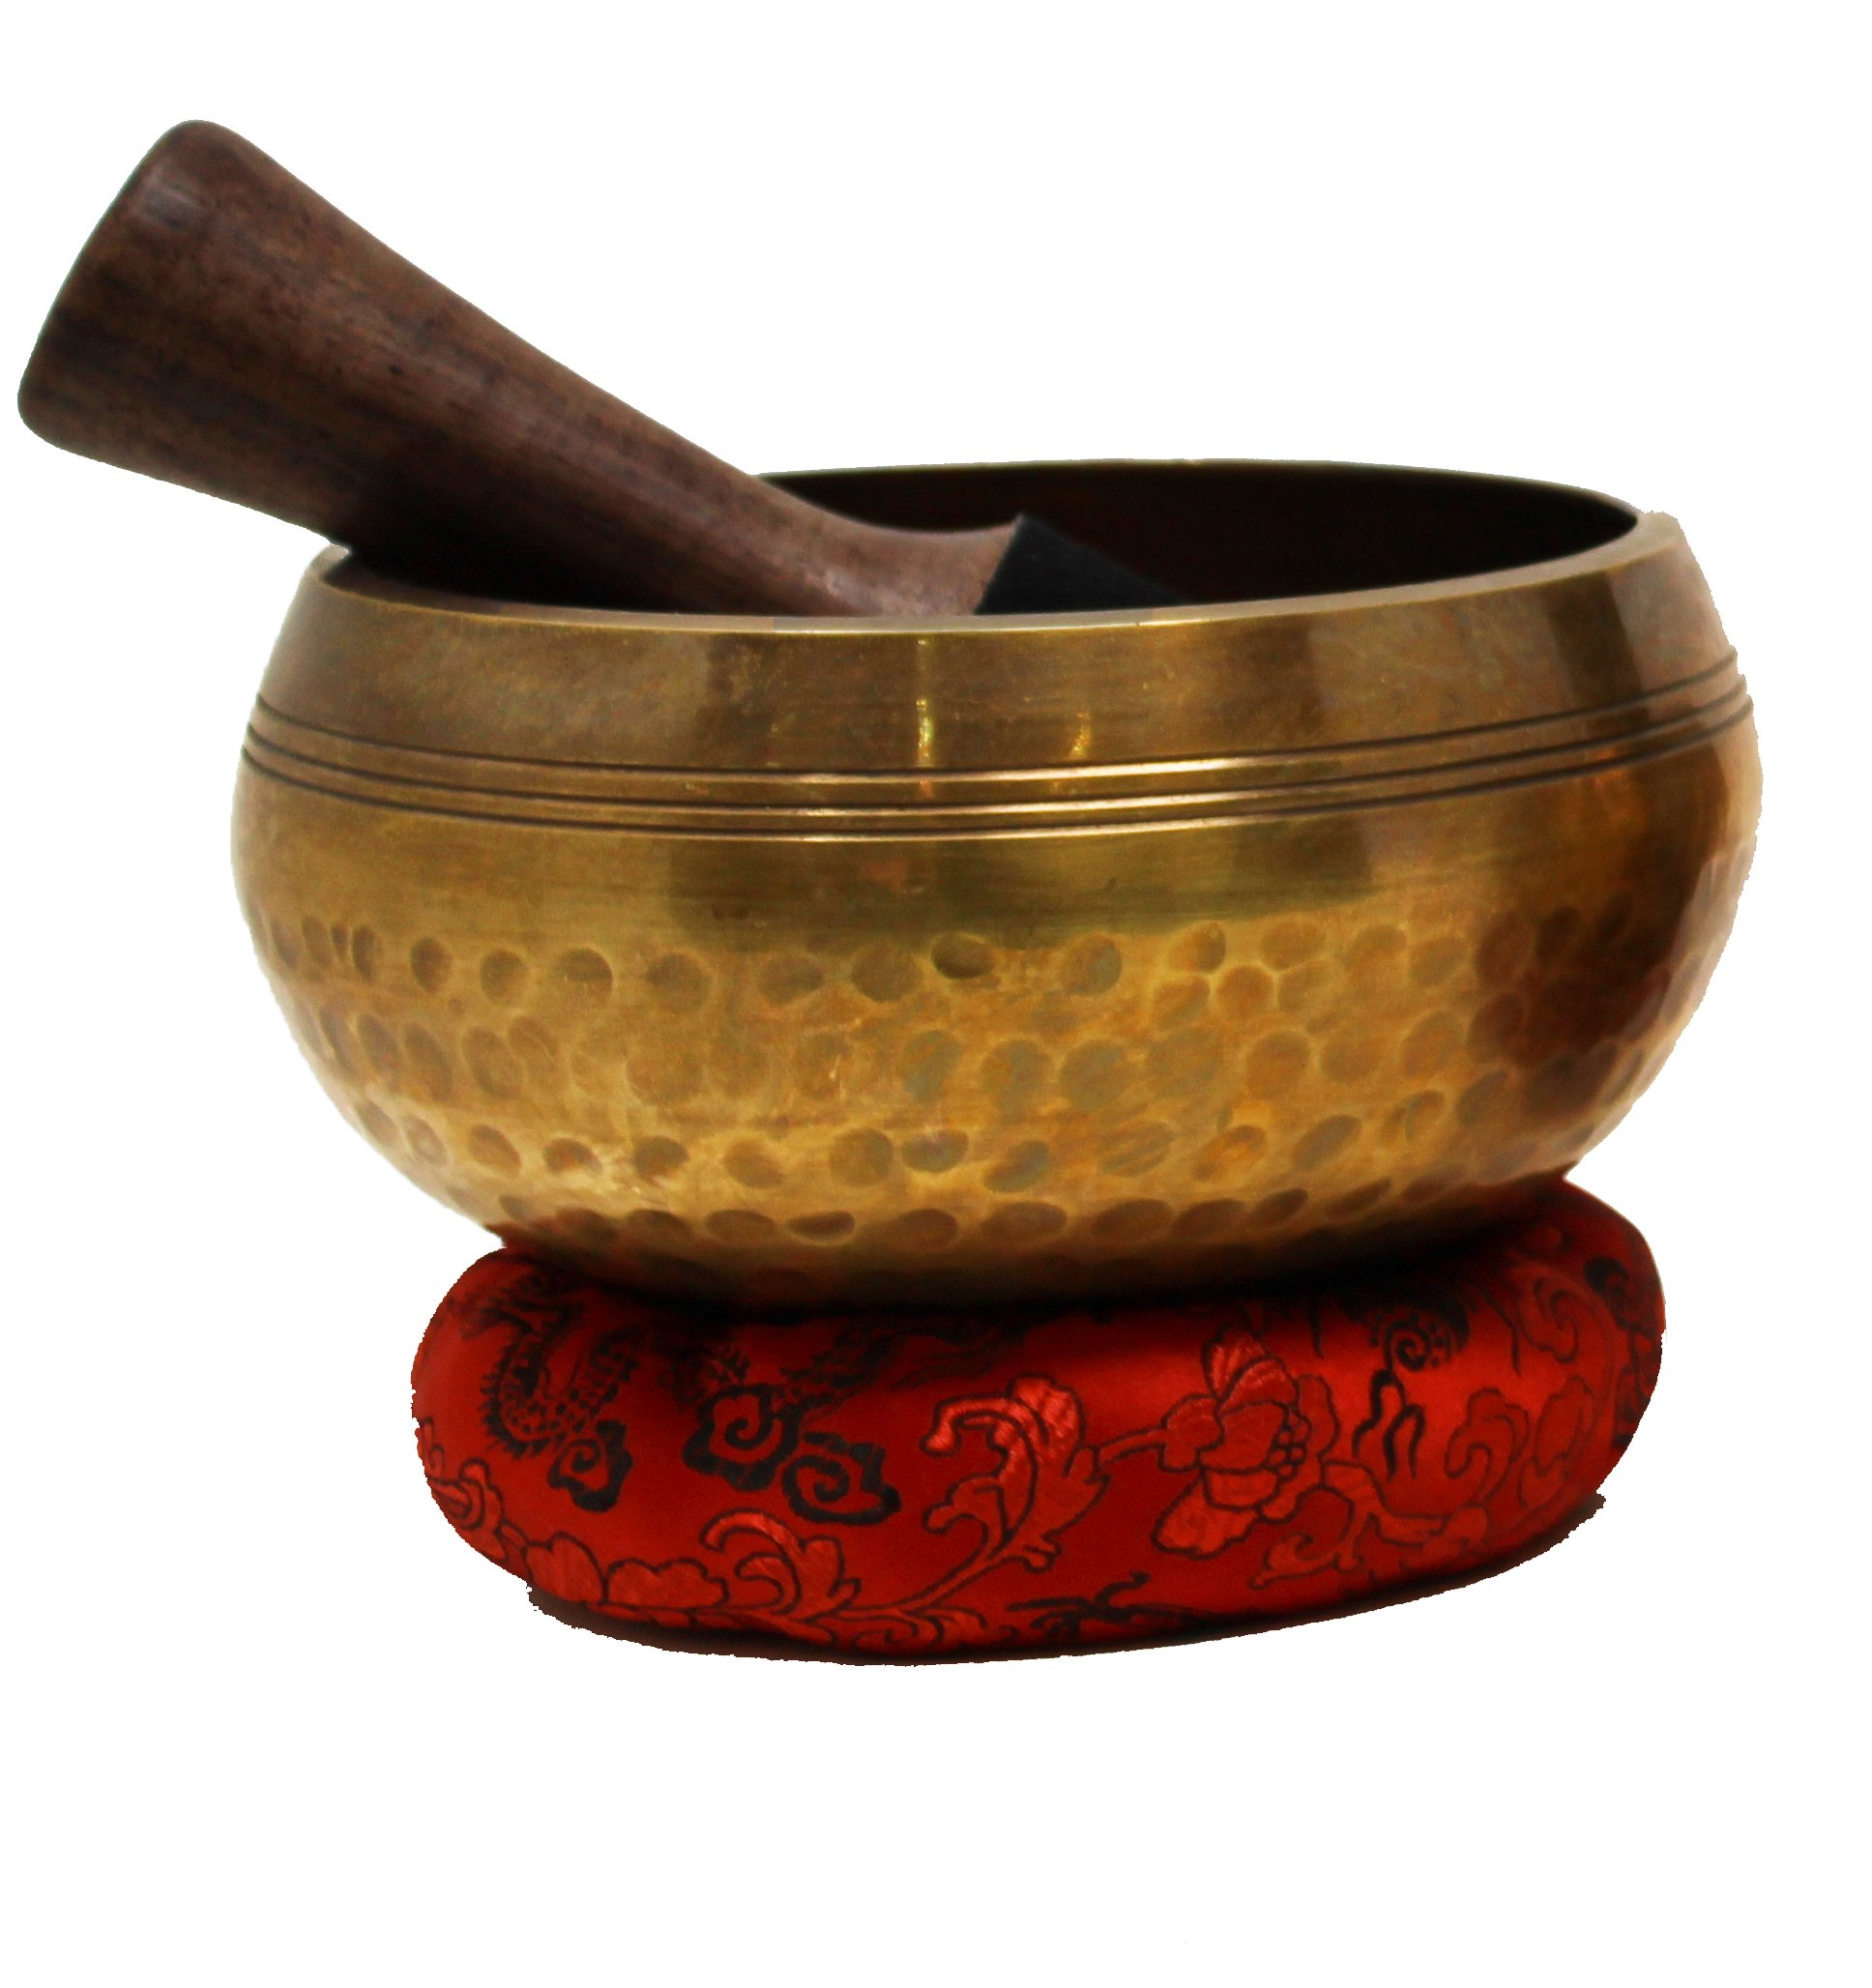 Hand Hammered Tibetan Singing Bowl Set with Deep Resonating Sound ~ For Mindfulness Meditation, Relaxation, Stress & Anxiety Relief & Yoga~ With Mallet, Cushion & Instruction (Large - 6 inch)